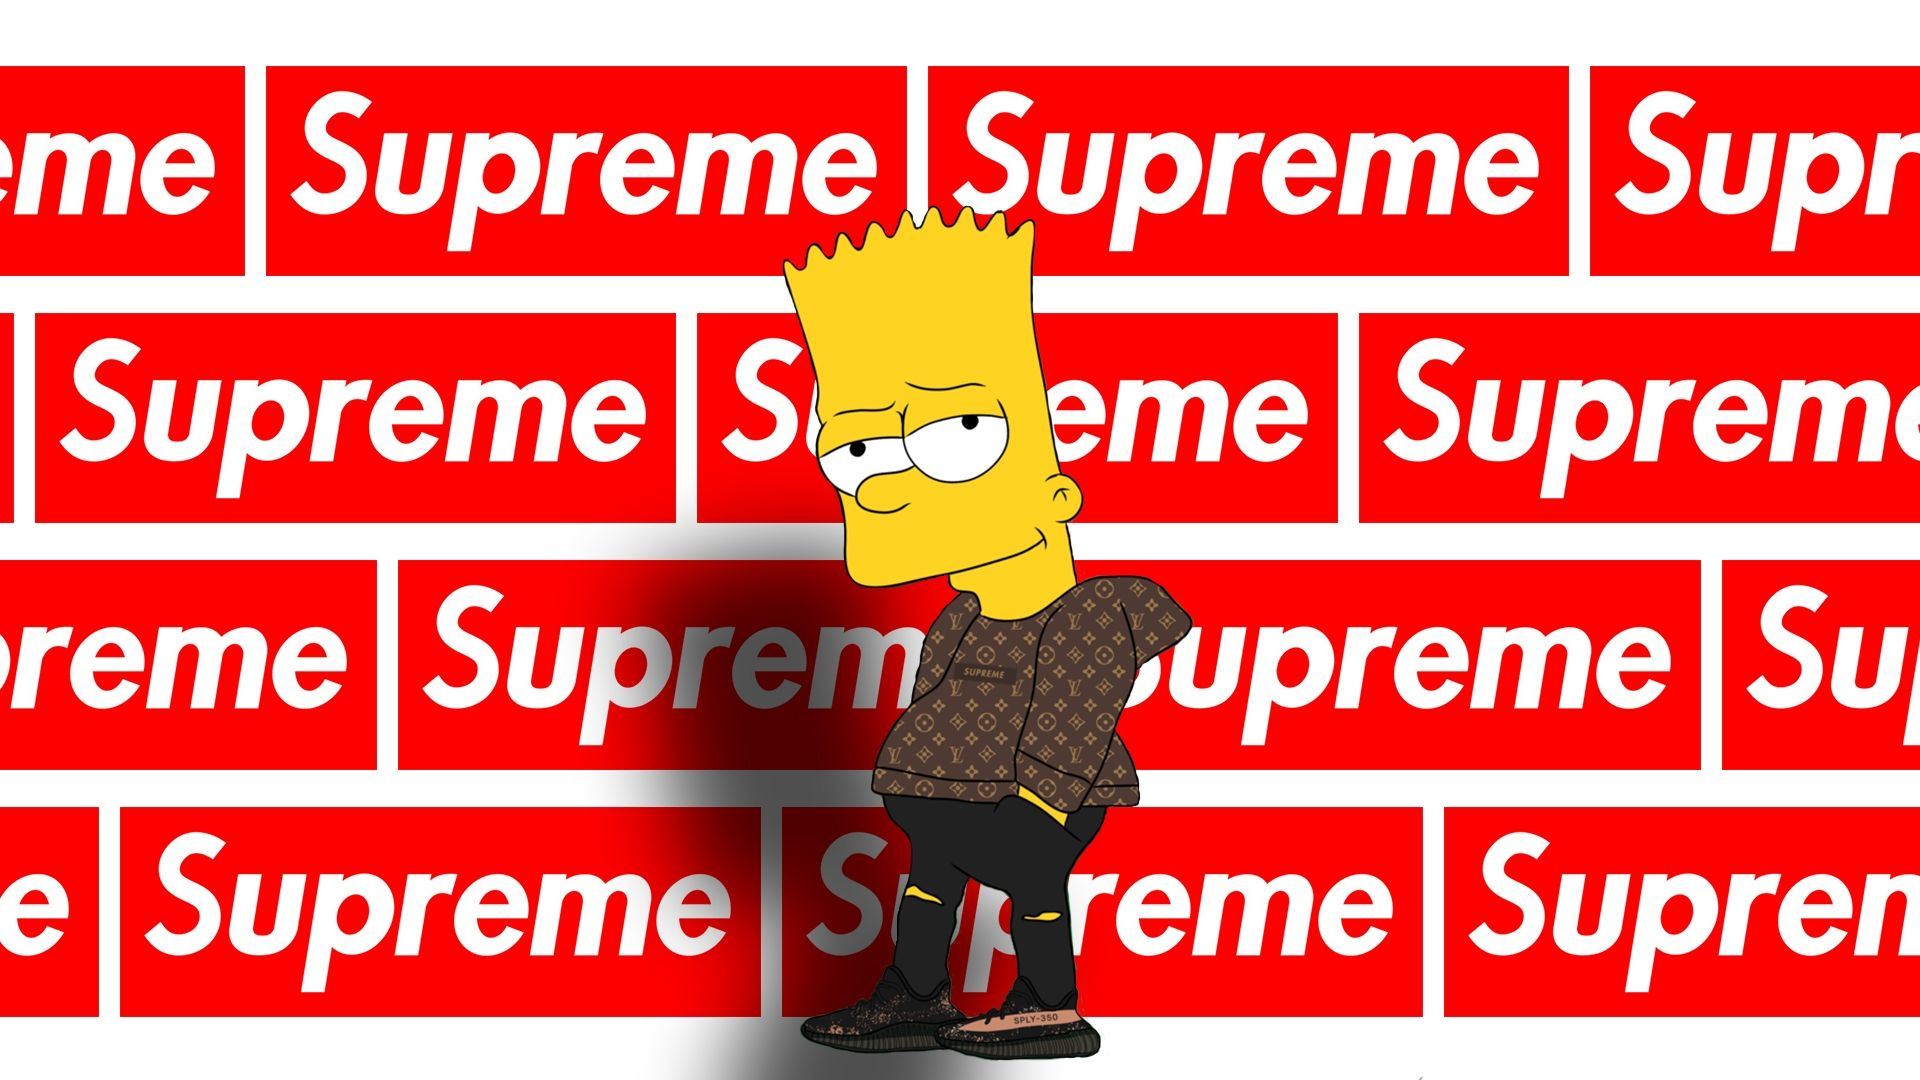 Supreme Bart Wallpapers Wallpaper Cave Intended For Simpsons Supreme Wallpapers Supreme Wallpaper Supreme Iphone Wallpaper Supreme Background